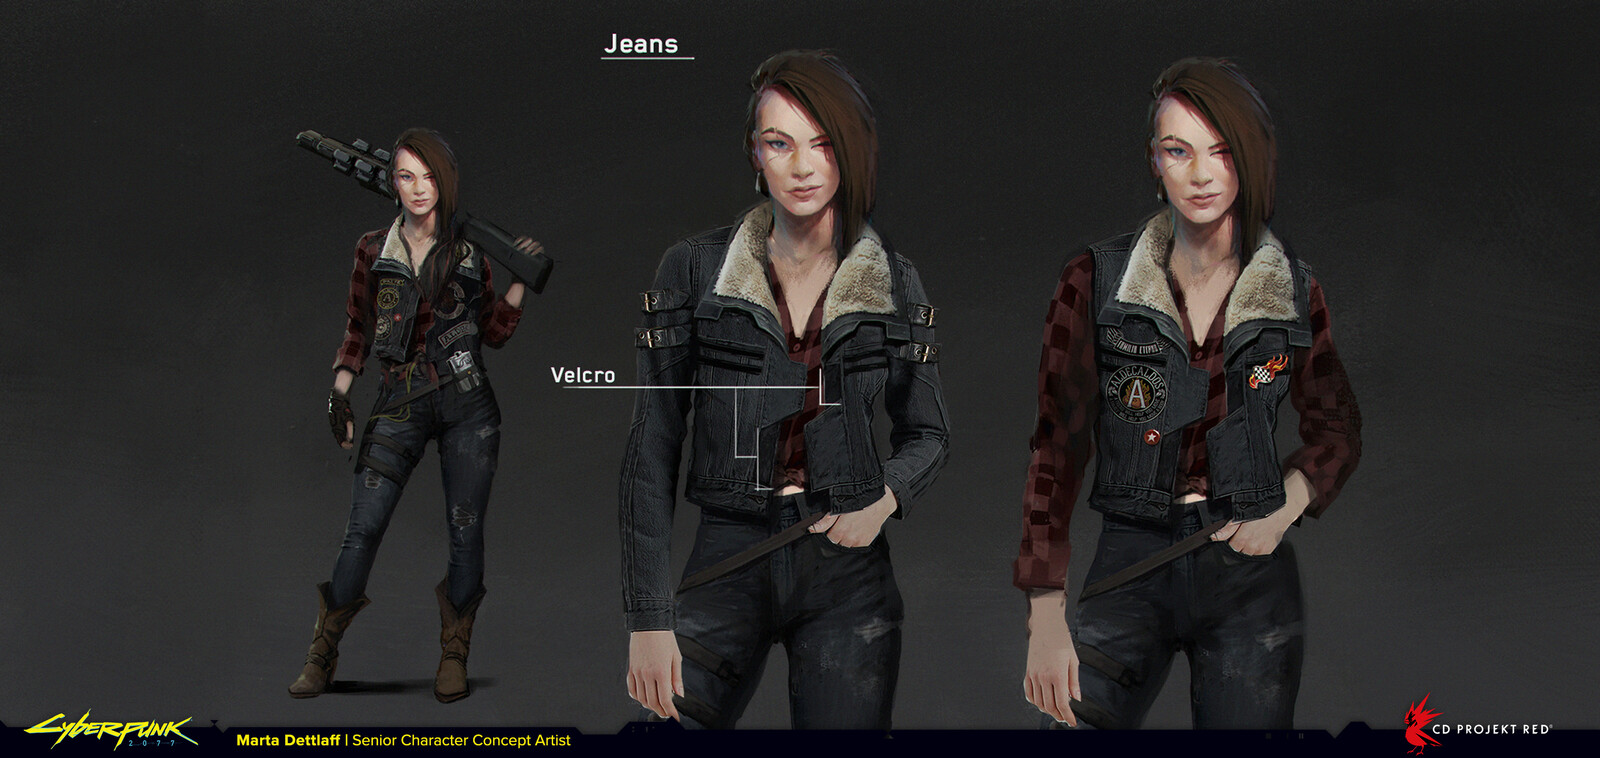 Example of working on crowd assets - jacket which is a base for many different appearances.